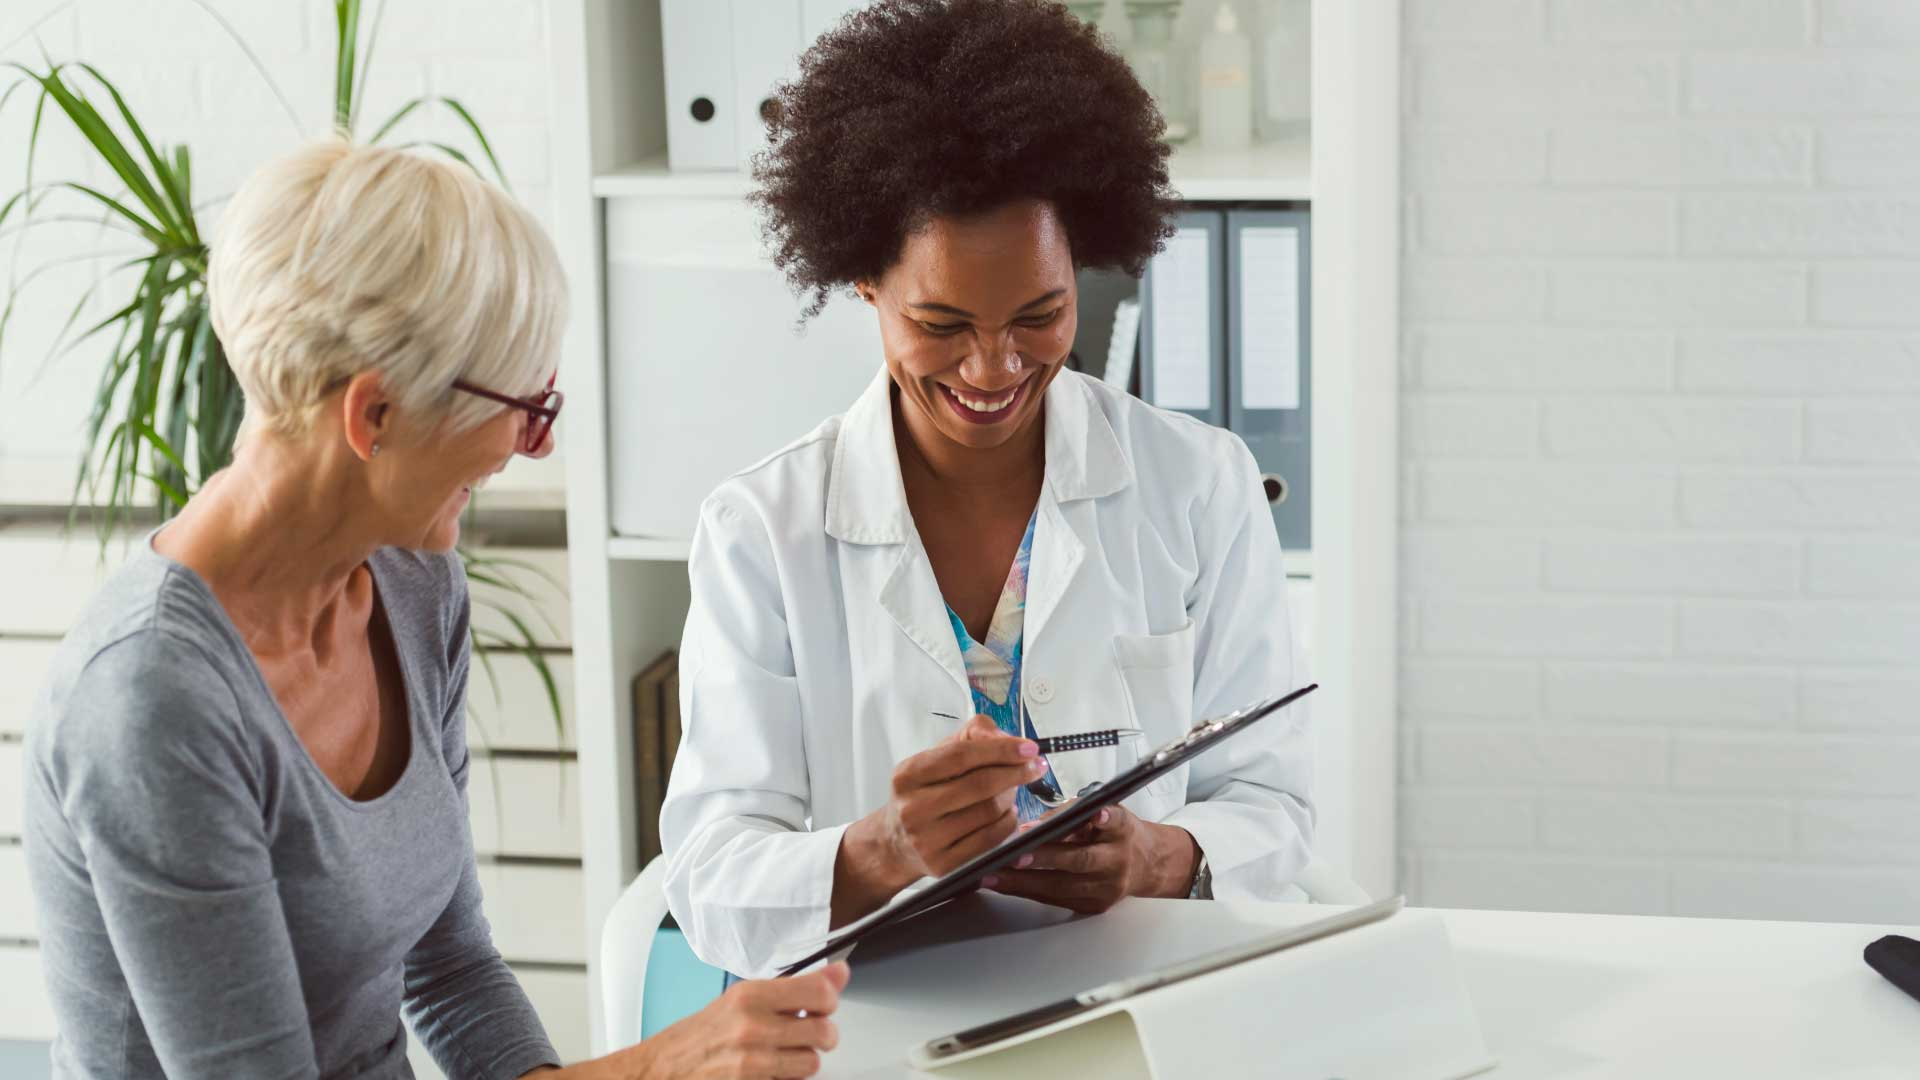 Customer Loyalty for Healthcare Industry